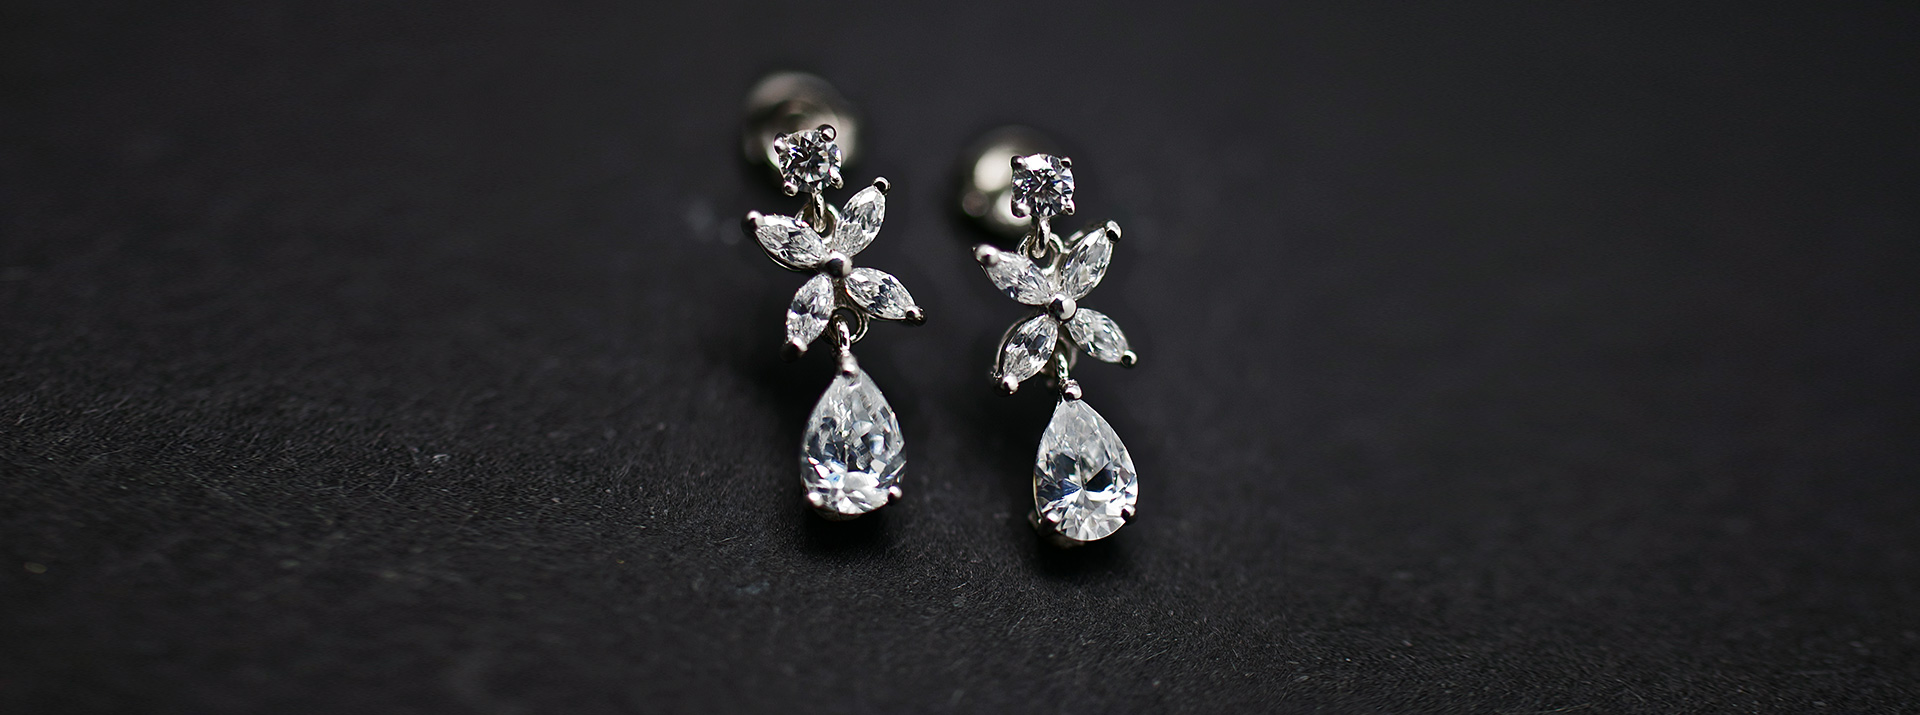 Earrings_Banner